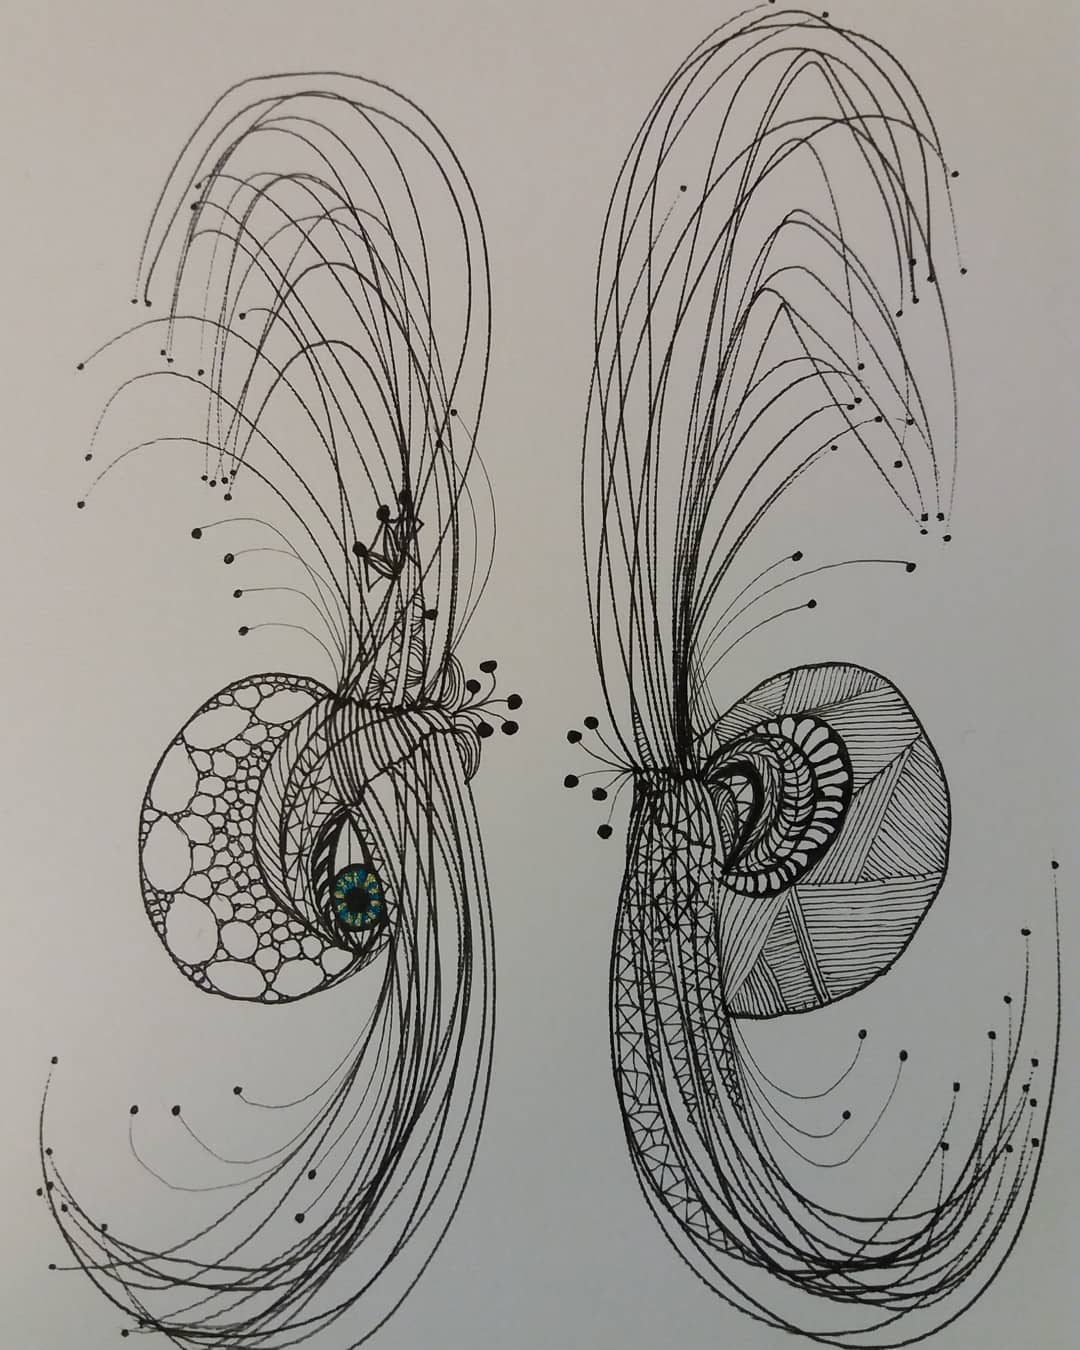 connection-vertical-pen-ink-marker-drawing-Eithne-Warren-https://insideheartspace.com